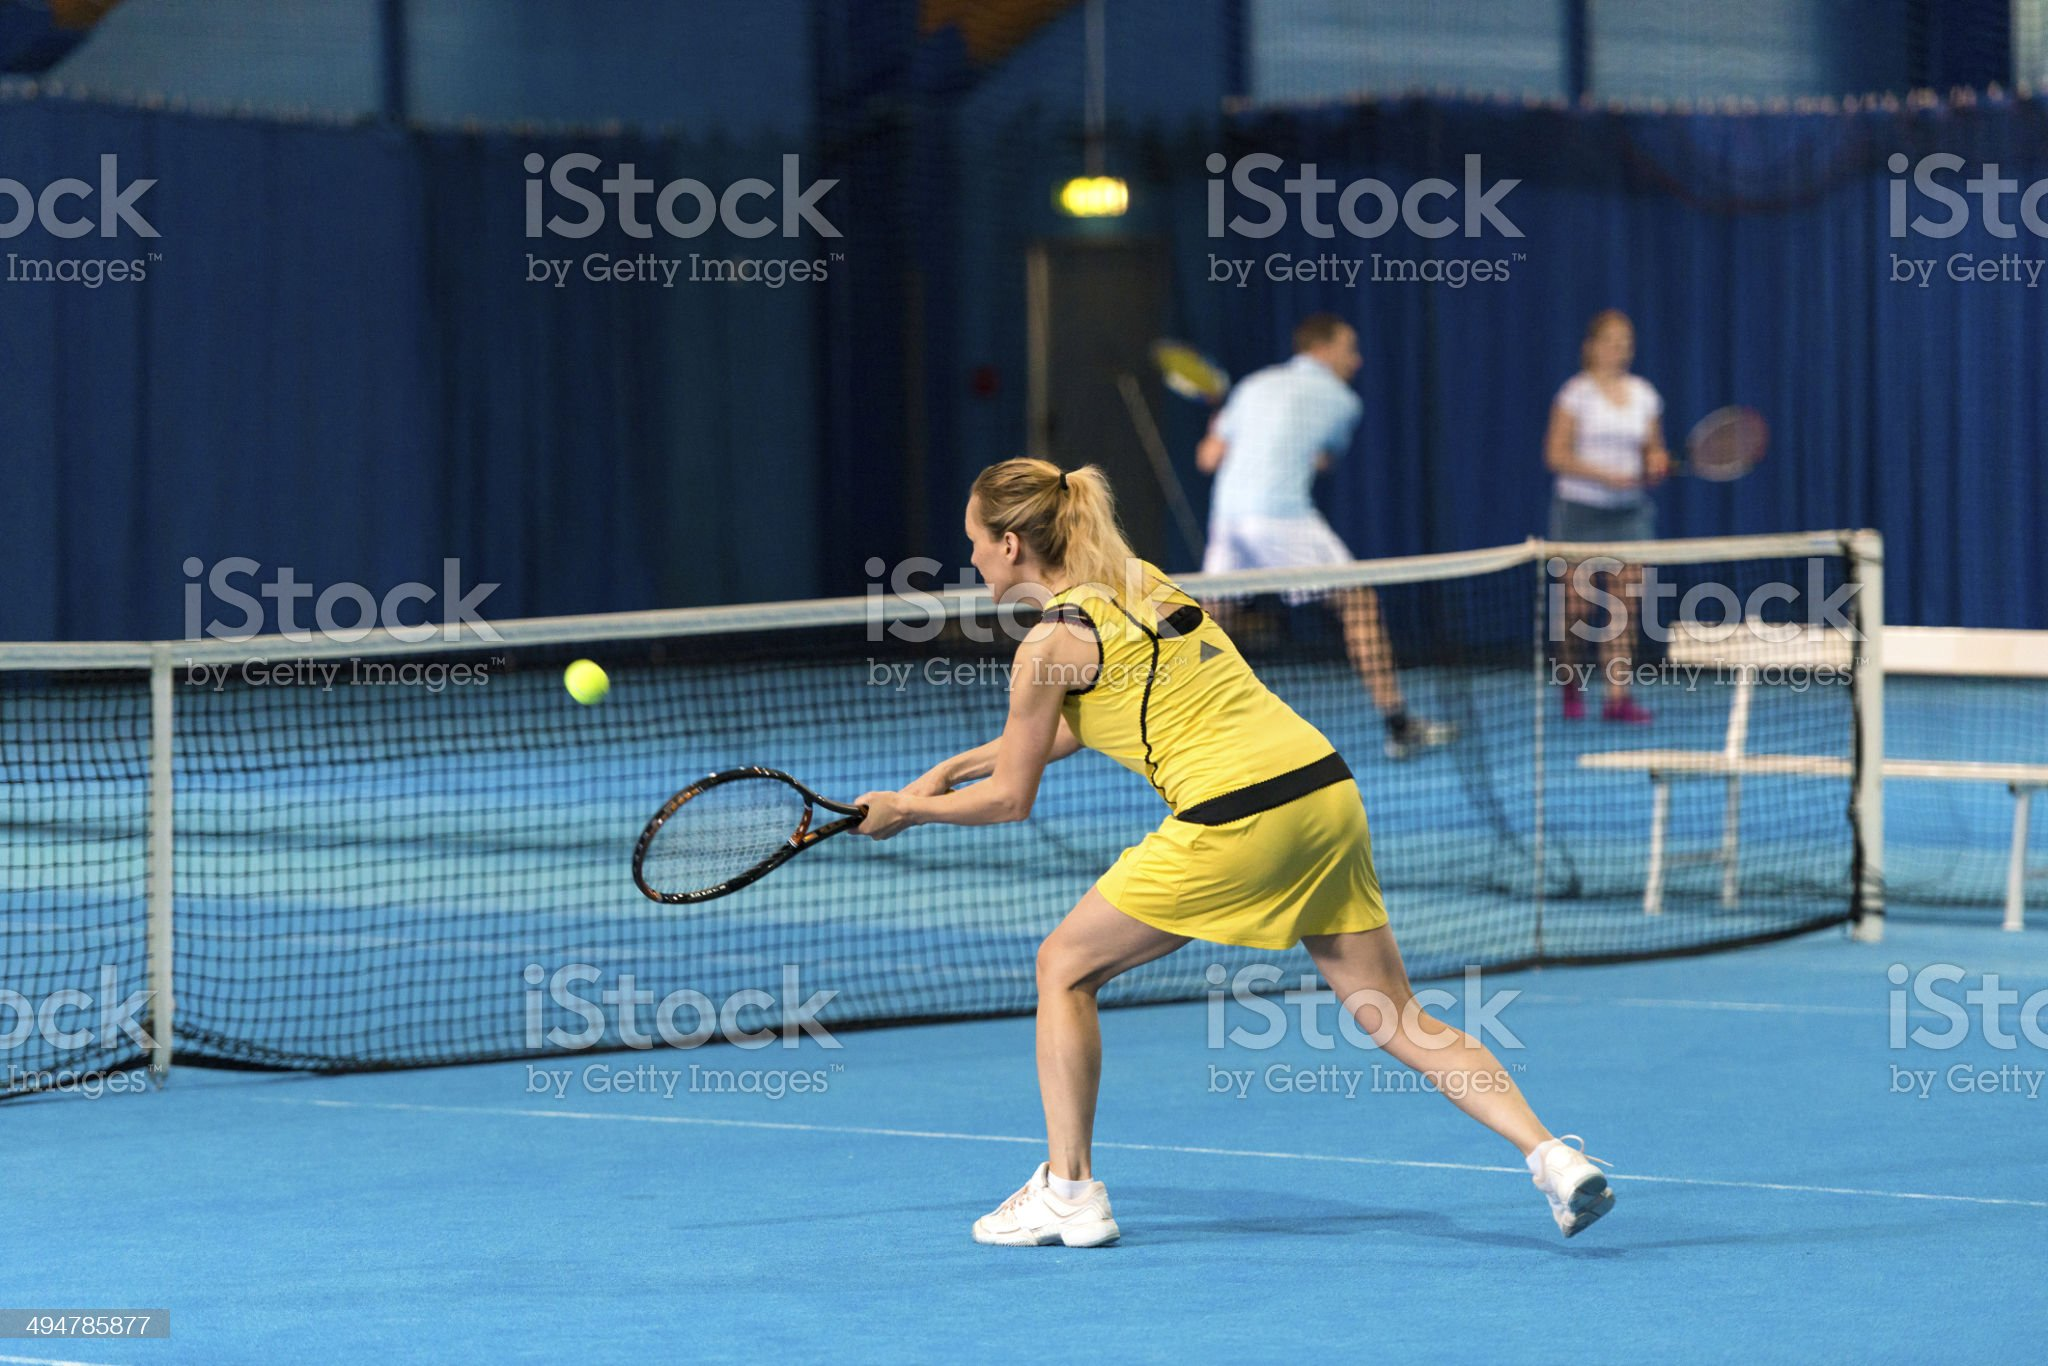 Female Tennis Player In Action royalty-free stock photo